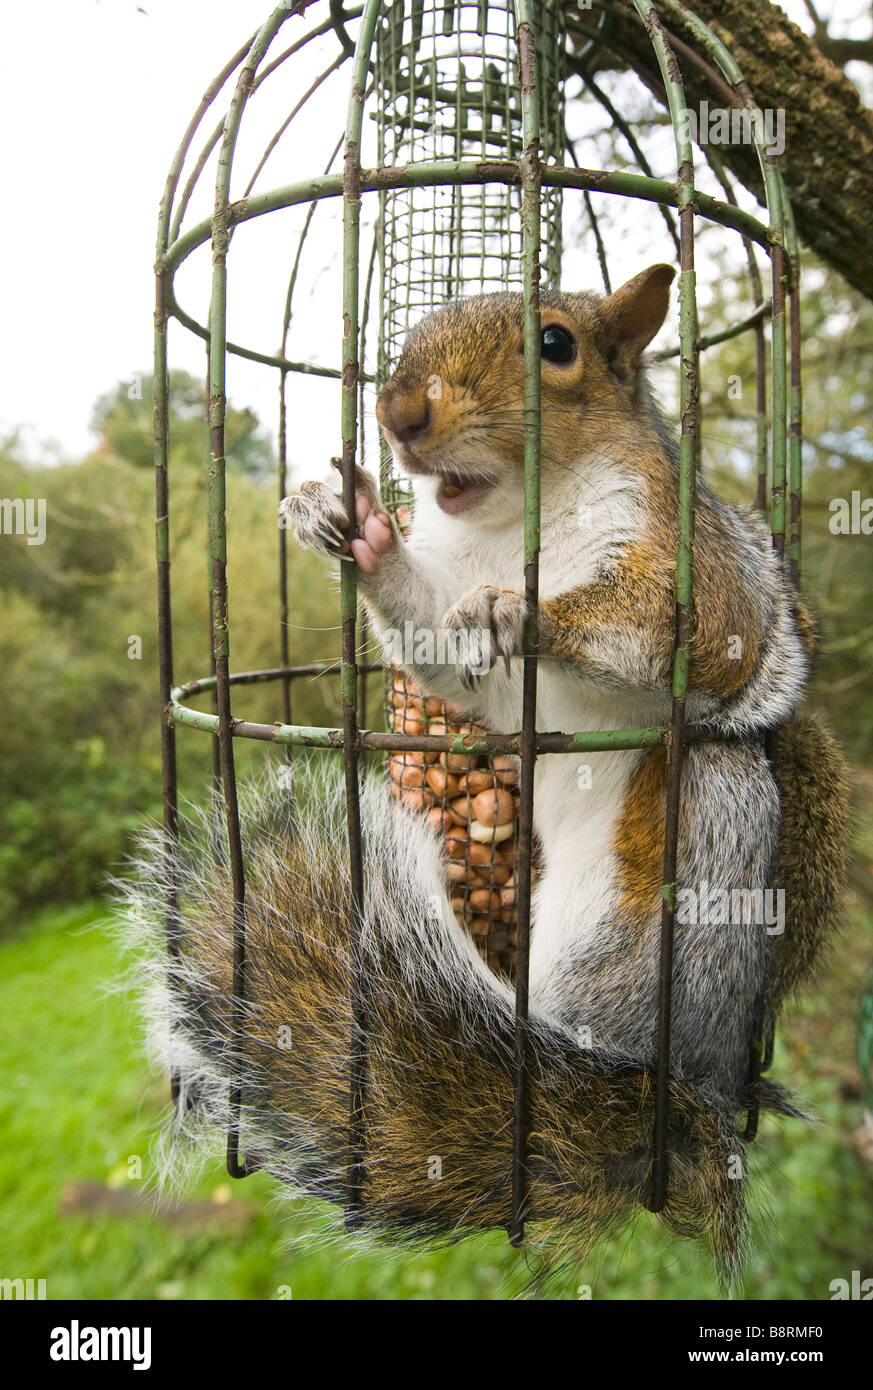 essentials how house proof squirrel resistant to bird palace suet feeder songbird